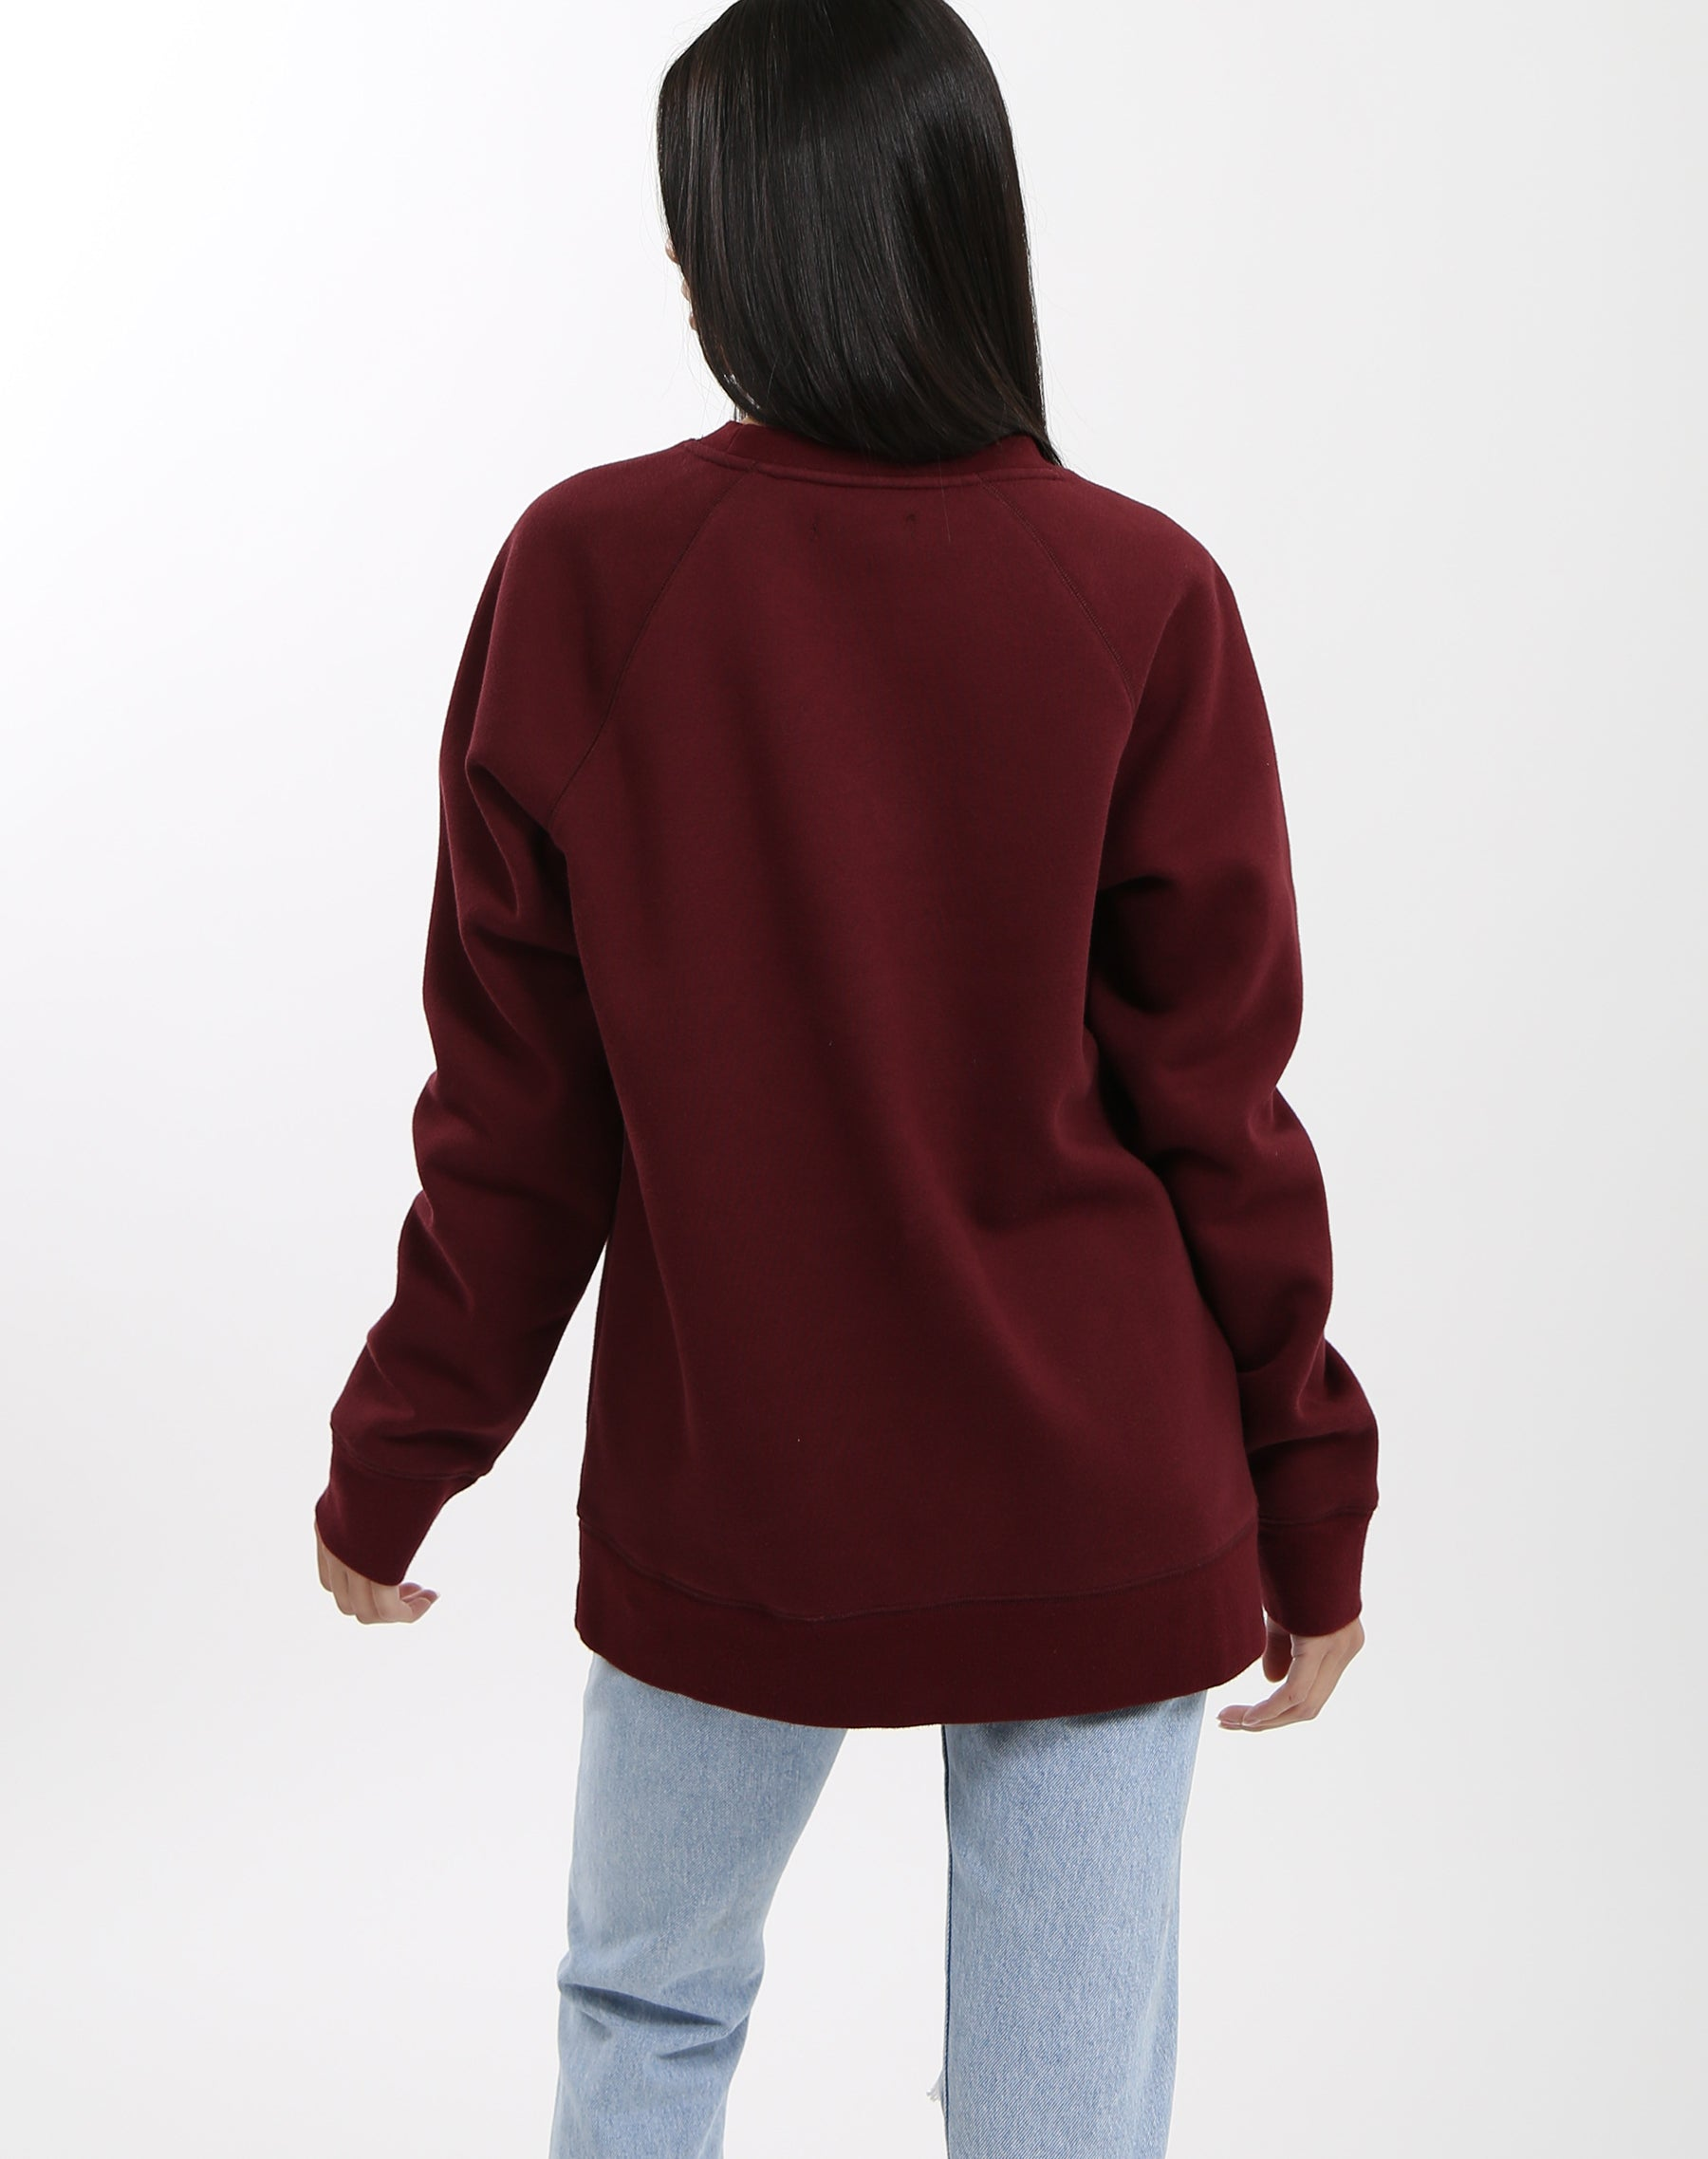 Photo of the back of the Redhead classic crew neck sweatshirt in burgundy by Brunette the Label.